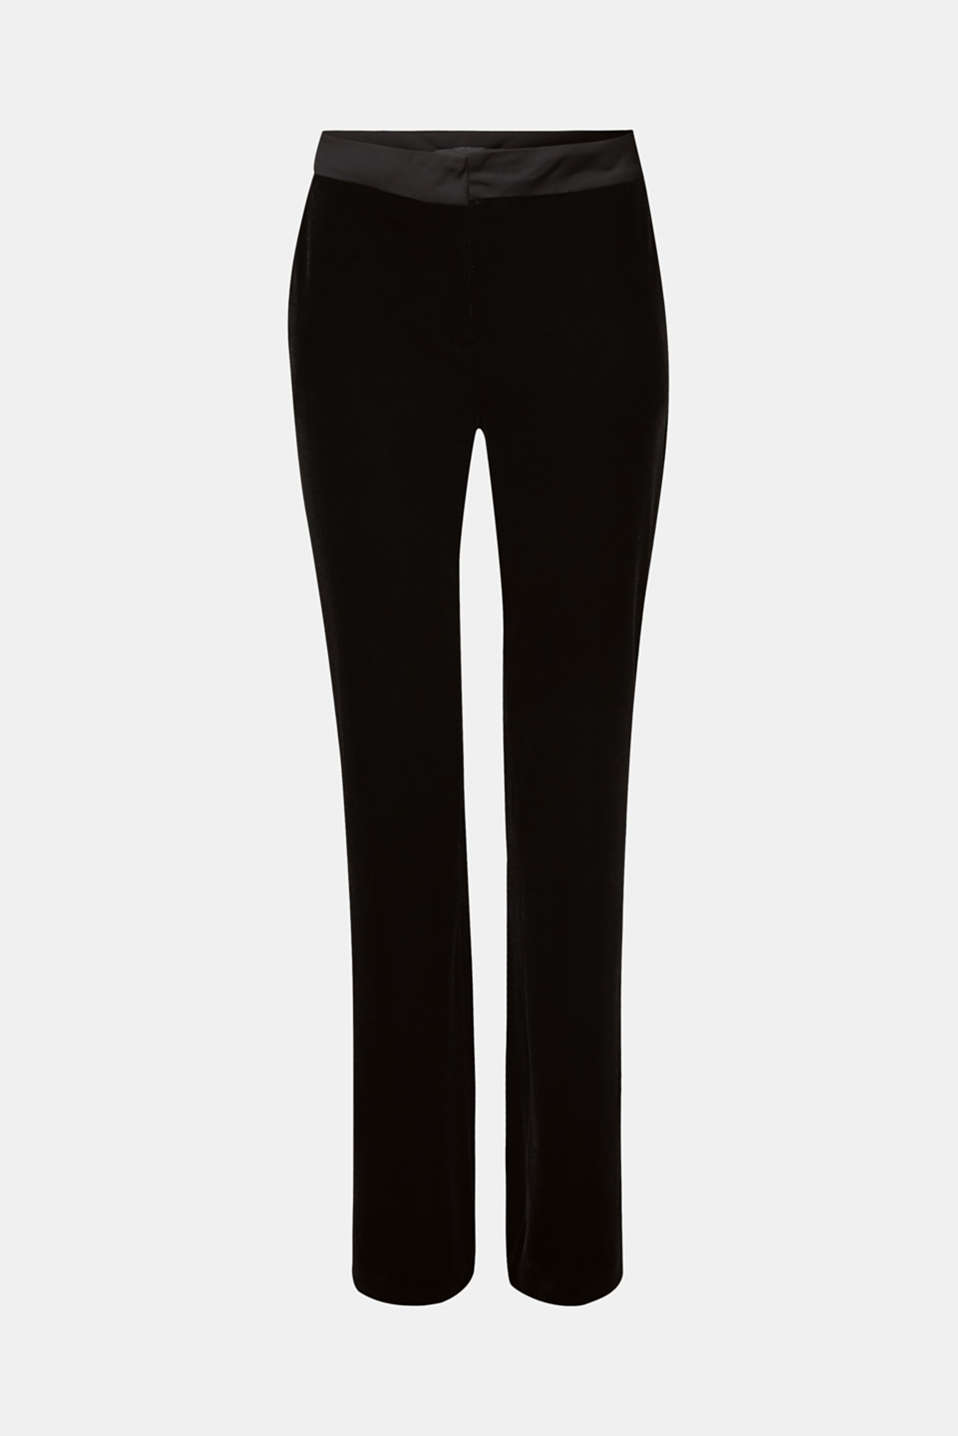 VELVET Mix + Match stretch trousers, BLACK, detail image number 6